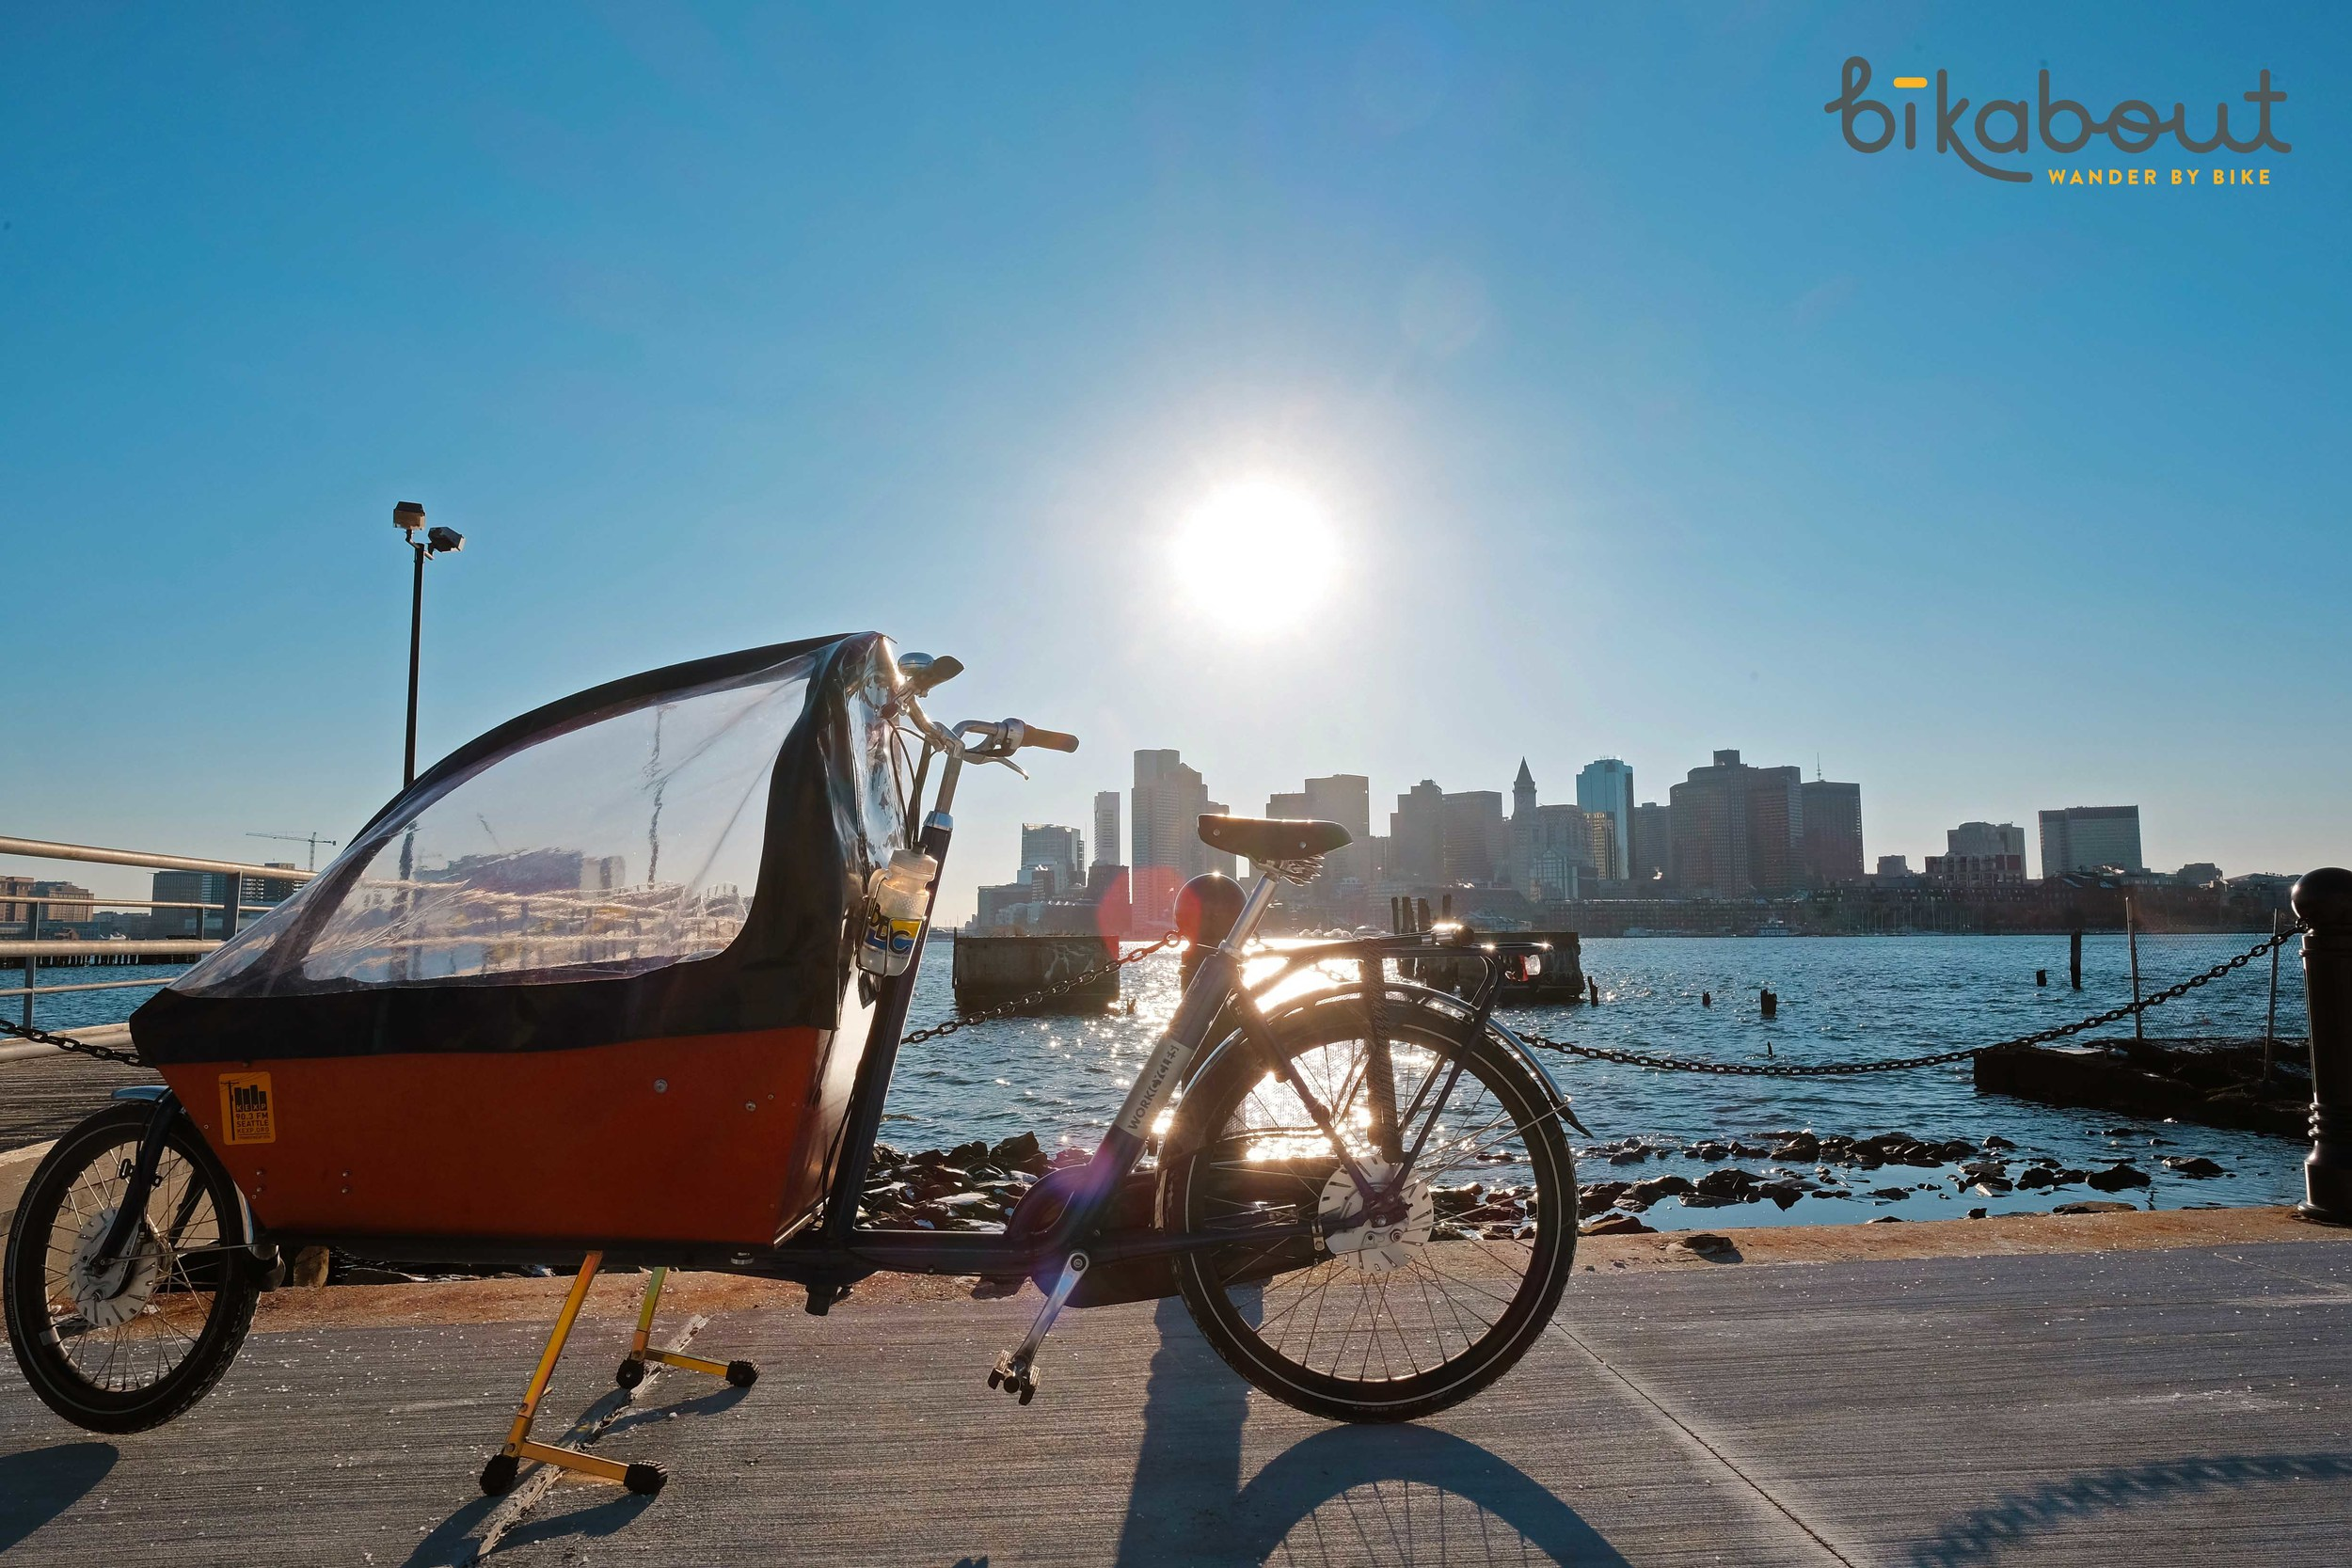 Give yourself 20 minutes of buffer time just to take in this view from the East Boston waterfront. After you exit the Maverick elevator, turn around 180 degrees and take the path to the waterfront.